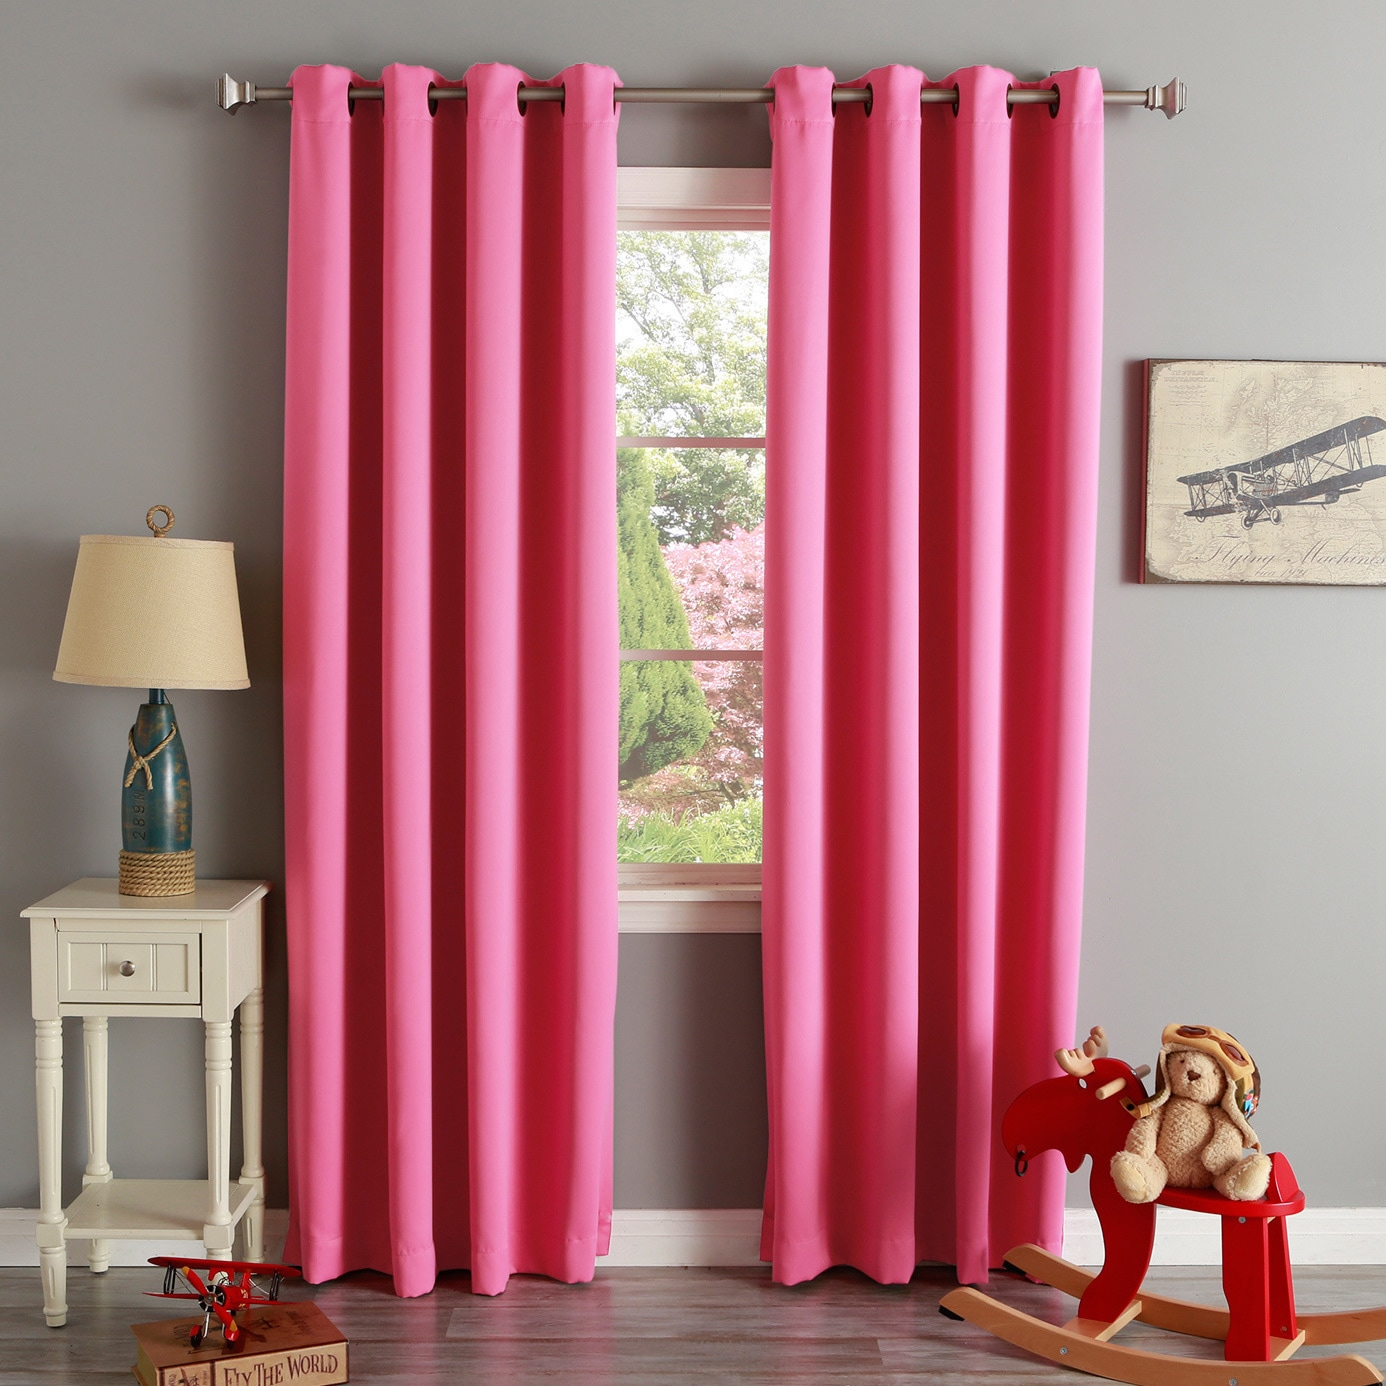 patio benefits of thermal drapes curtains image ismaya door design curtain insulated